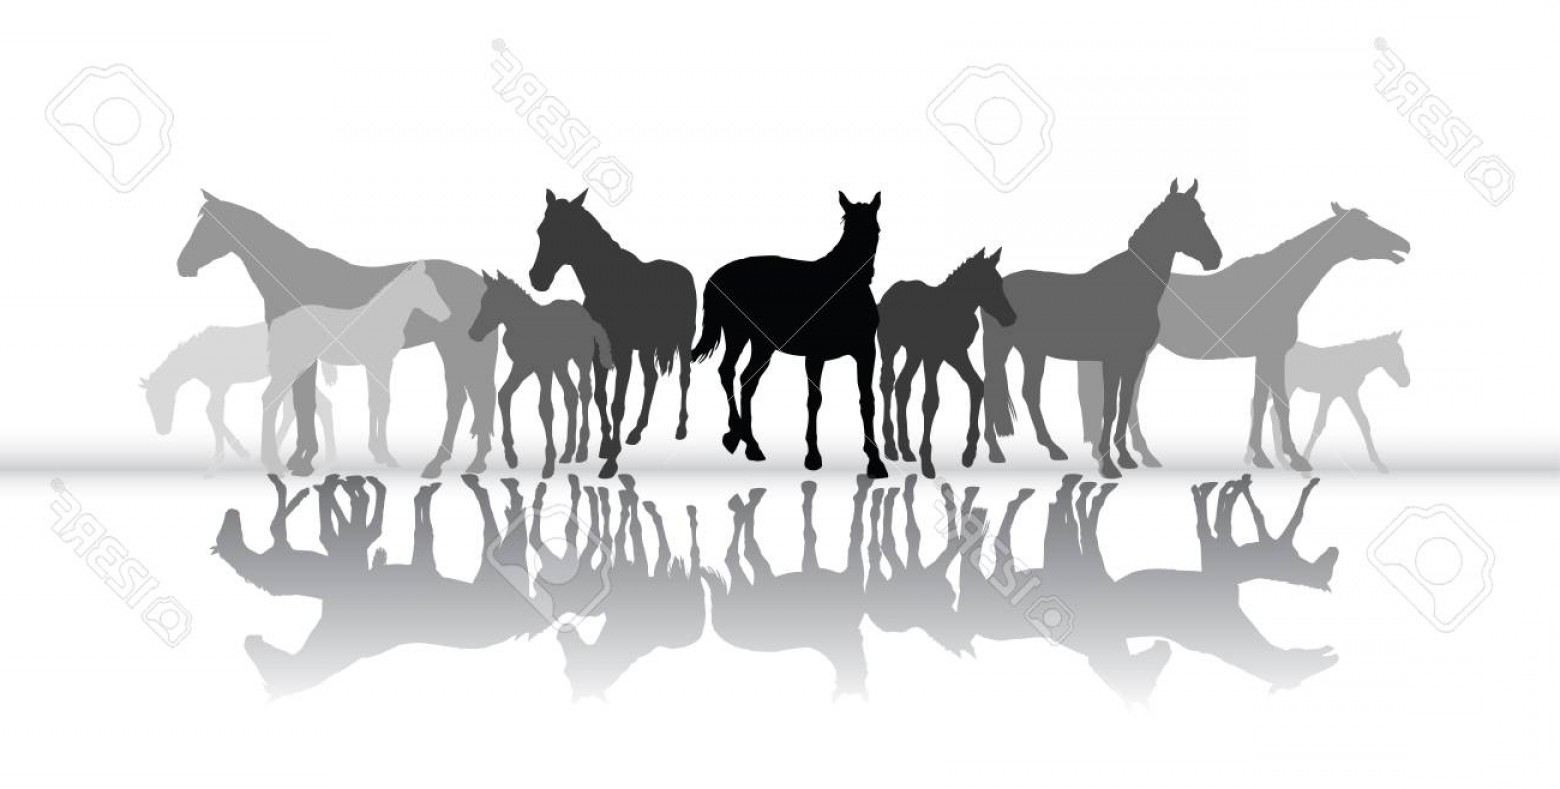 Sillouhette Vector Group: Photostock Vector Group Of Isolated Black And Grey Standing Silhouettes Of Horses Mares And Foals With Their Reflectio